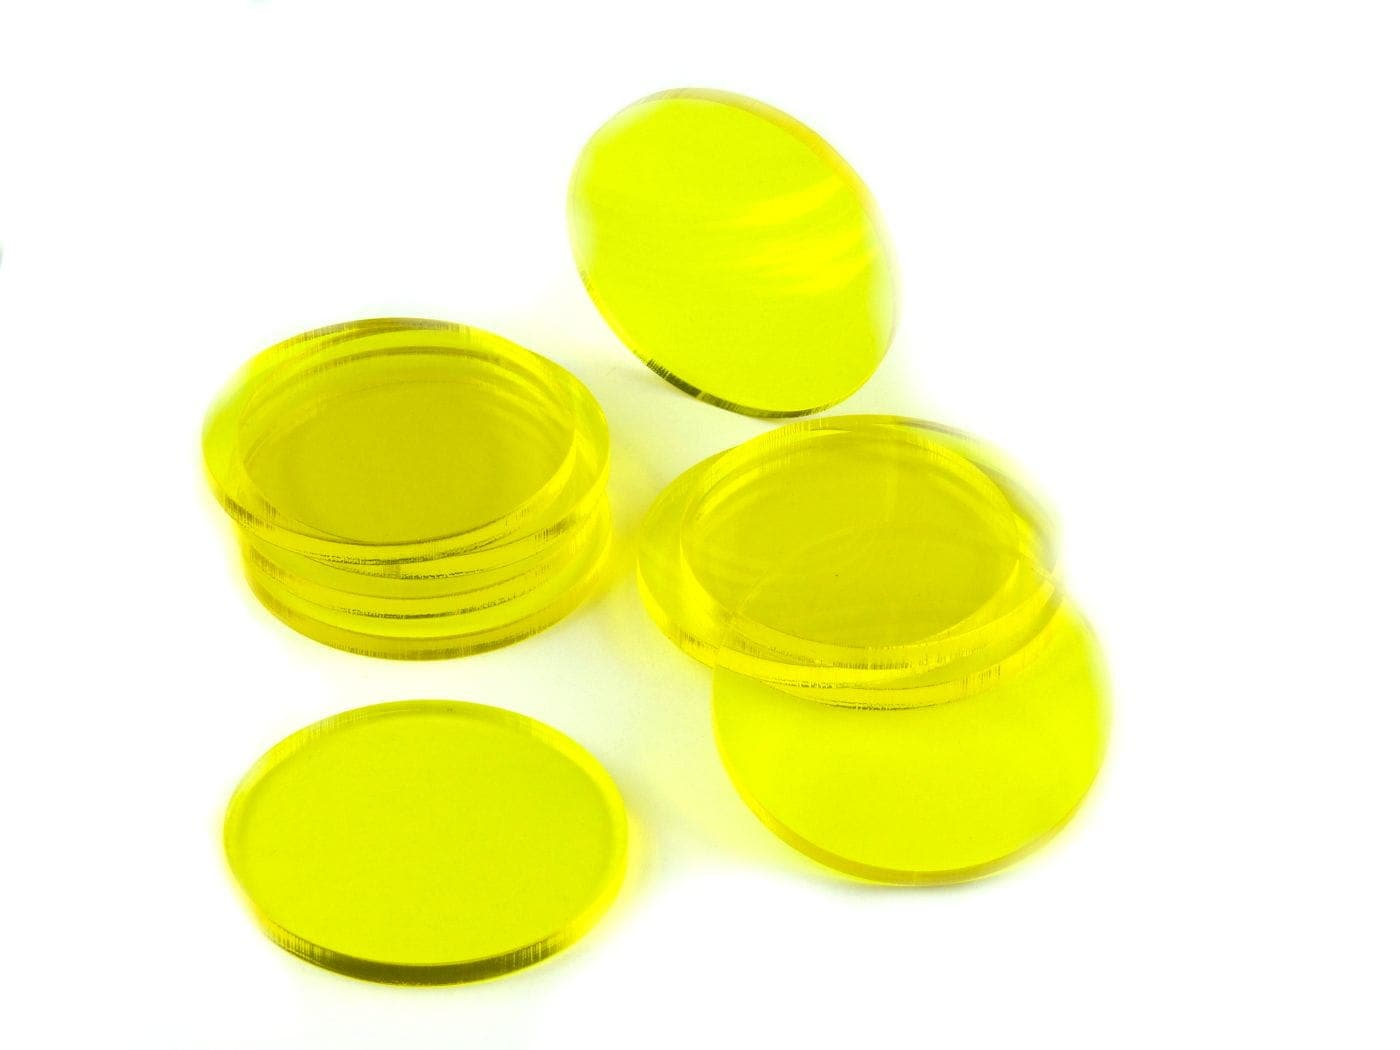 Acrylic miniature bases (10 pcs), round, clear, yellow, 50 x 3 mm - 1